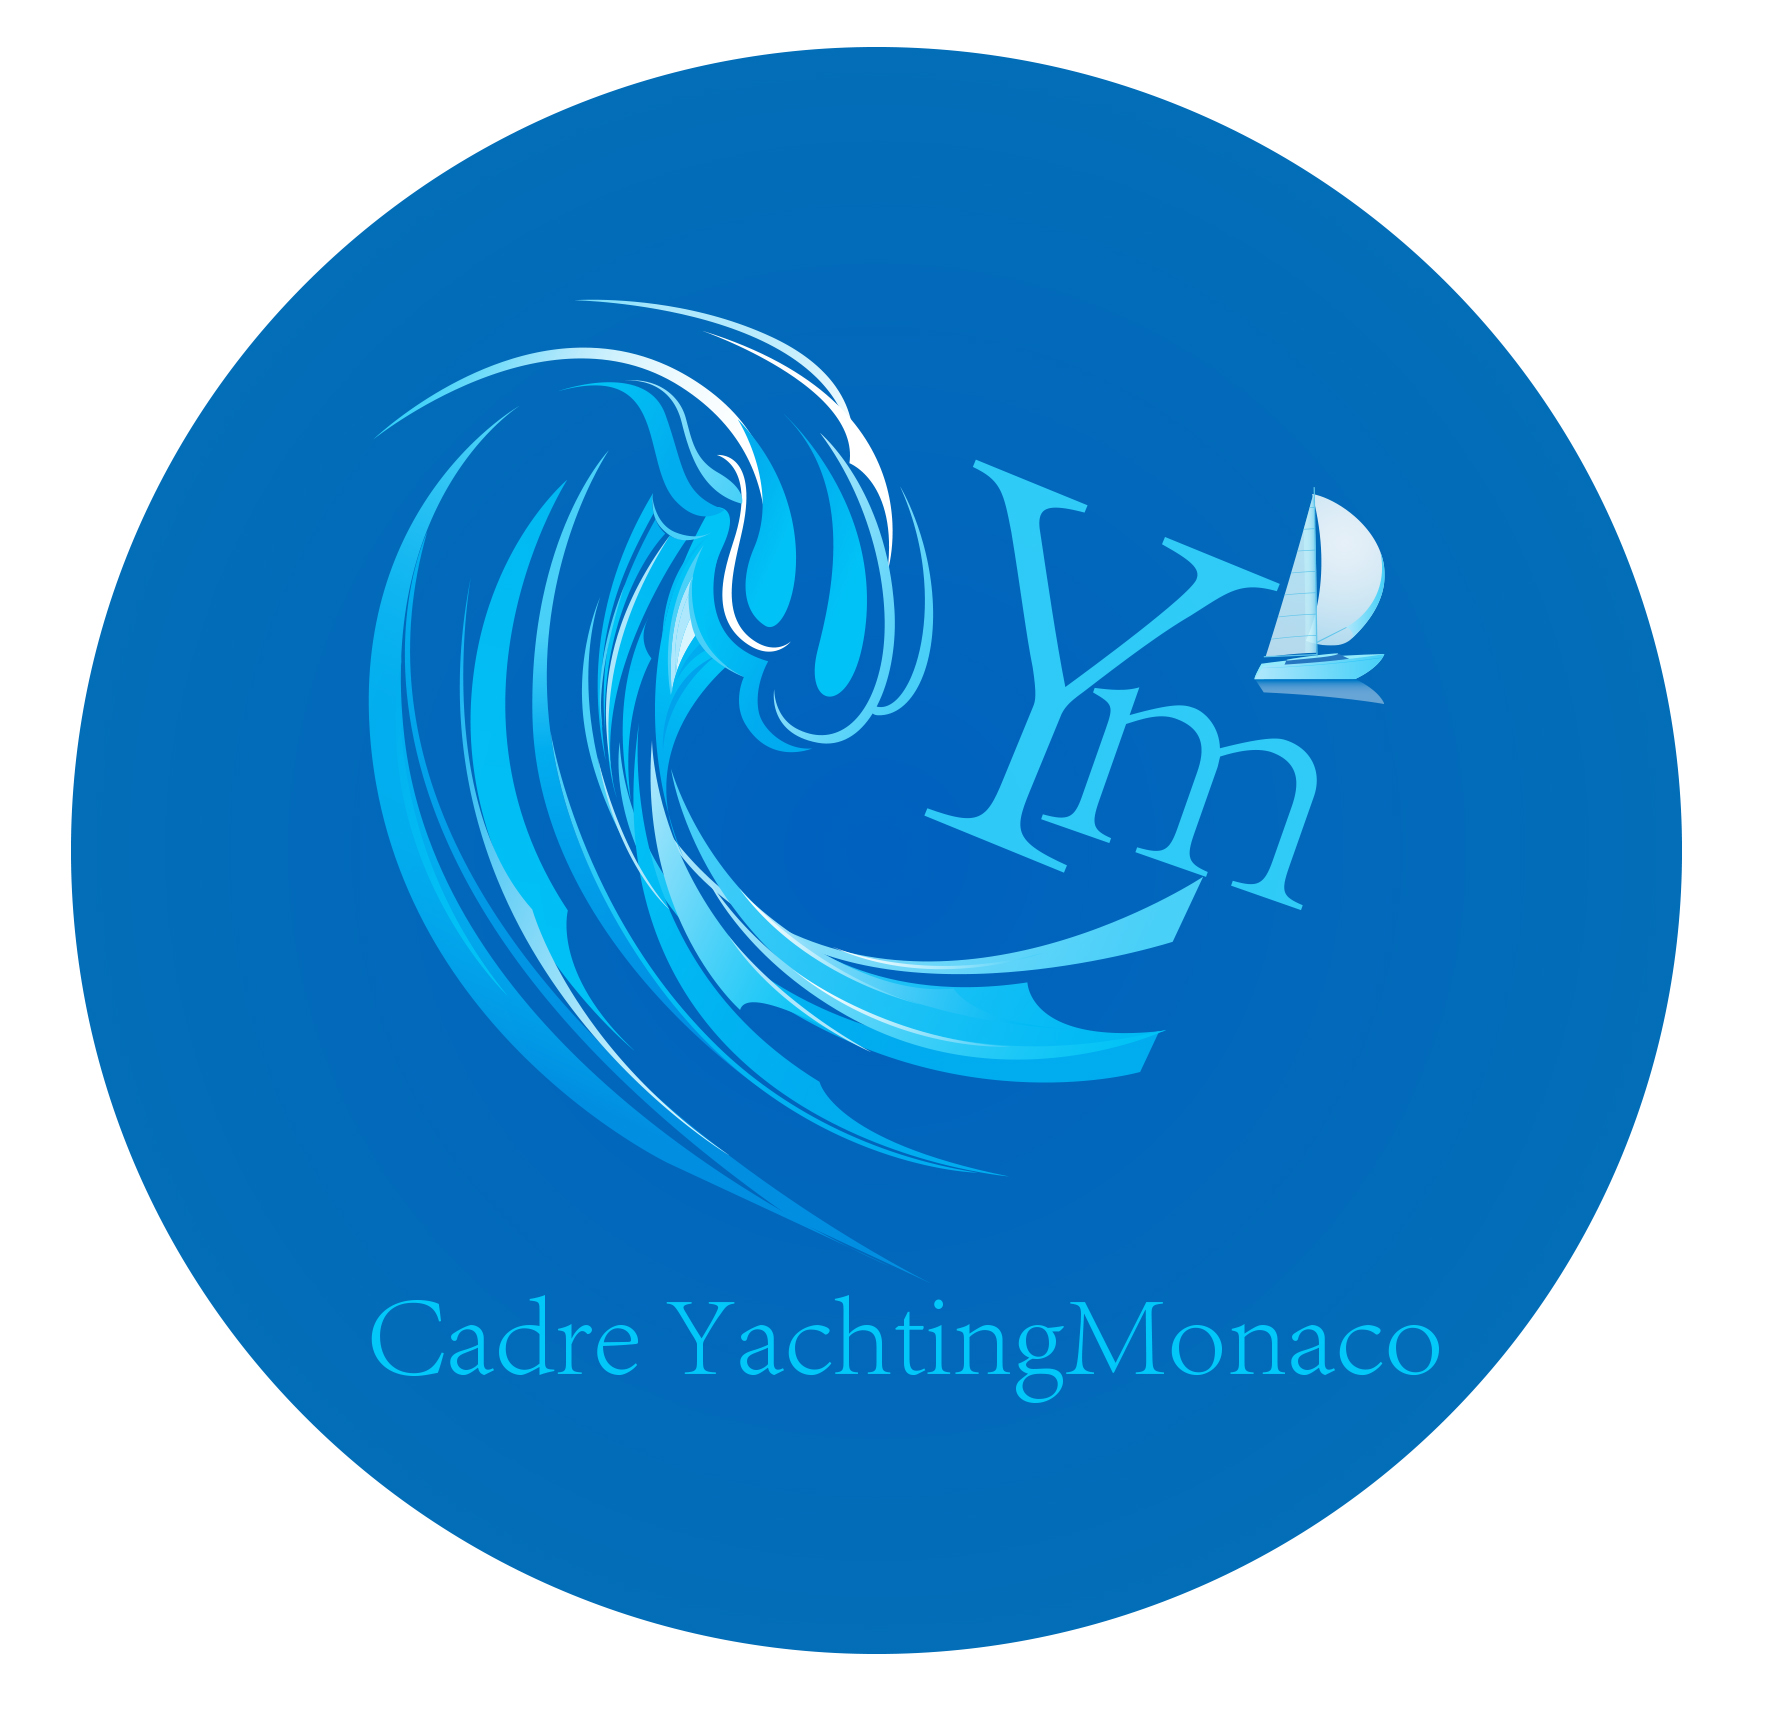 Logo Design by Leonard Anthony Alloso - Entry No. 410 in the Logo Design Contest New Logo Design for Cadre Yachting Monaco.